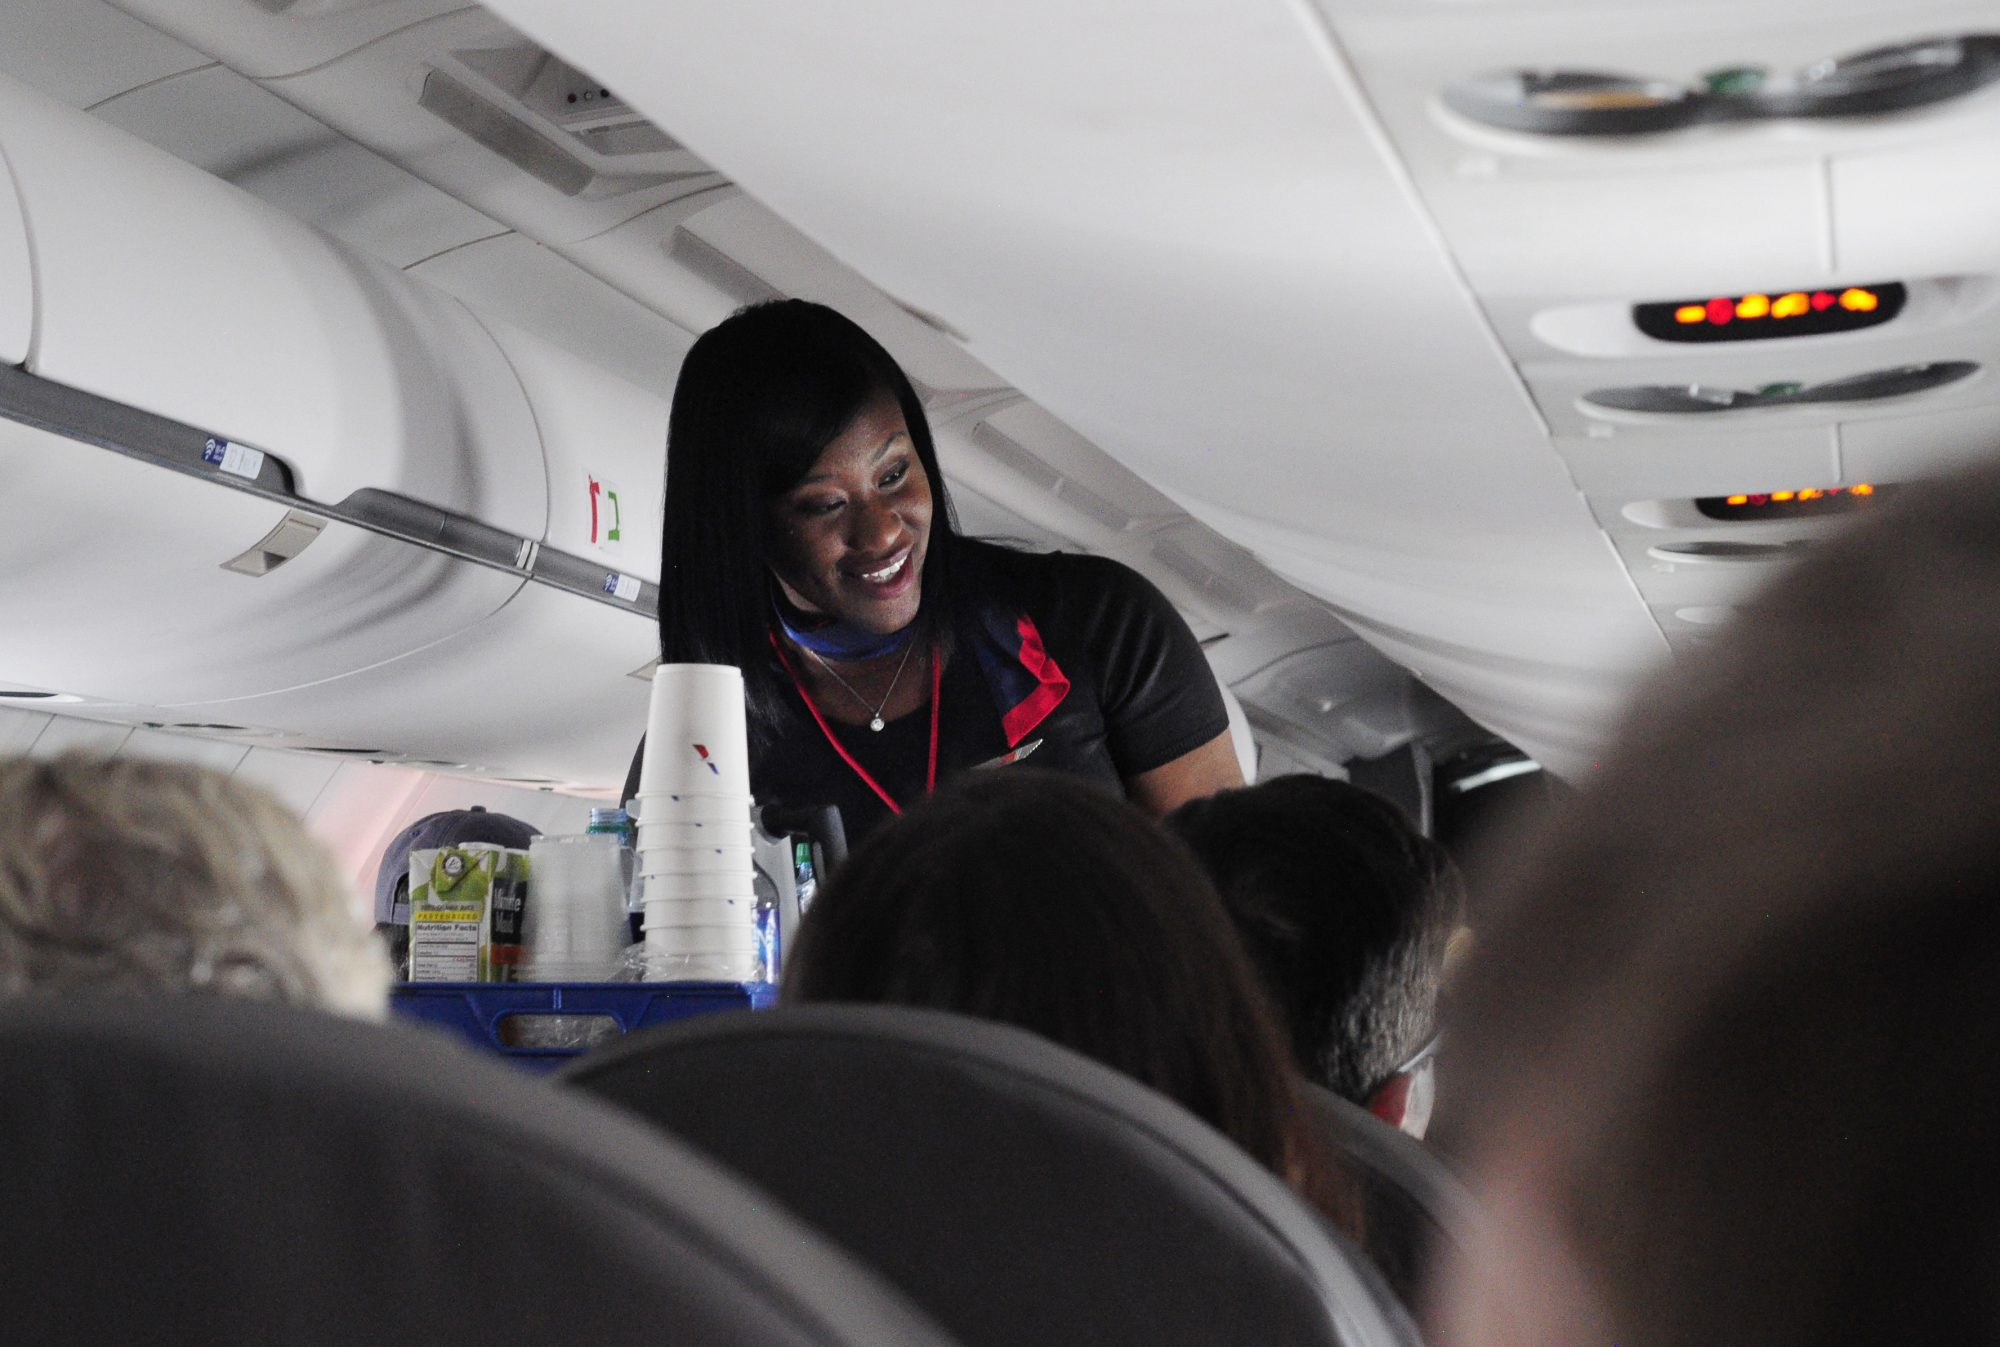 An American Airlines flight attendant